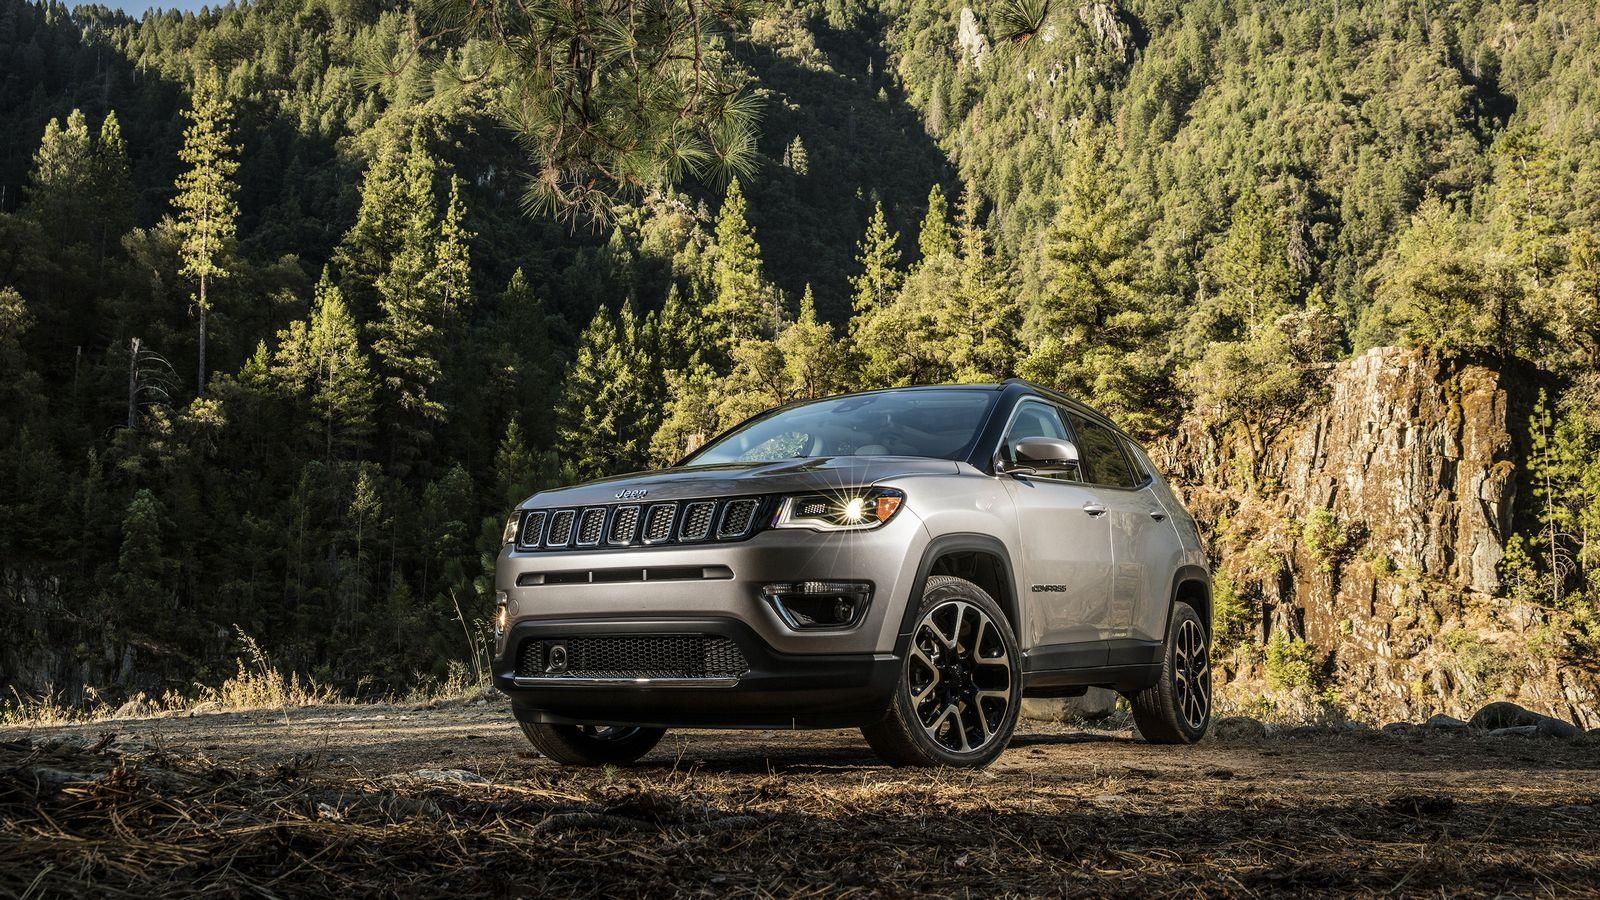 India-bound 2017 Jeep Compass photo gallery